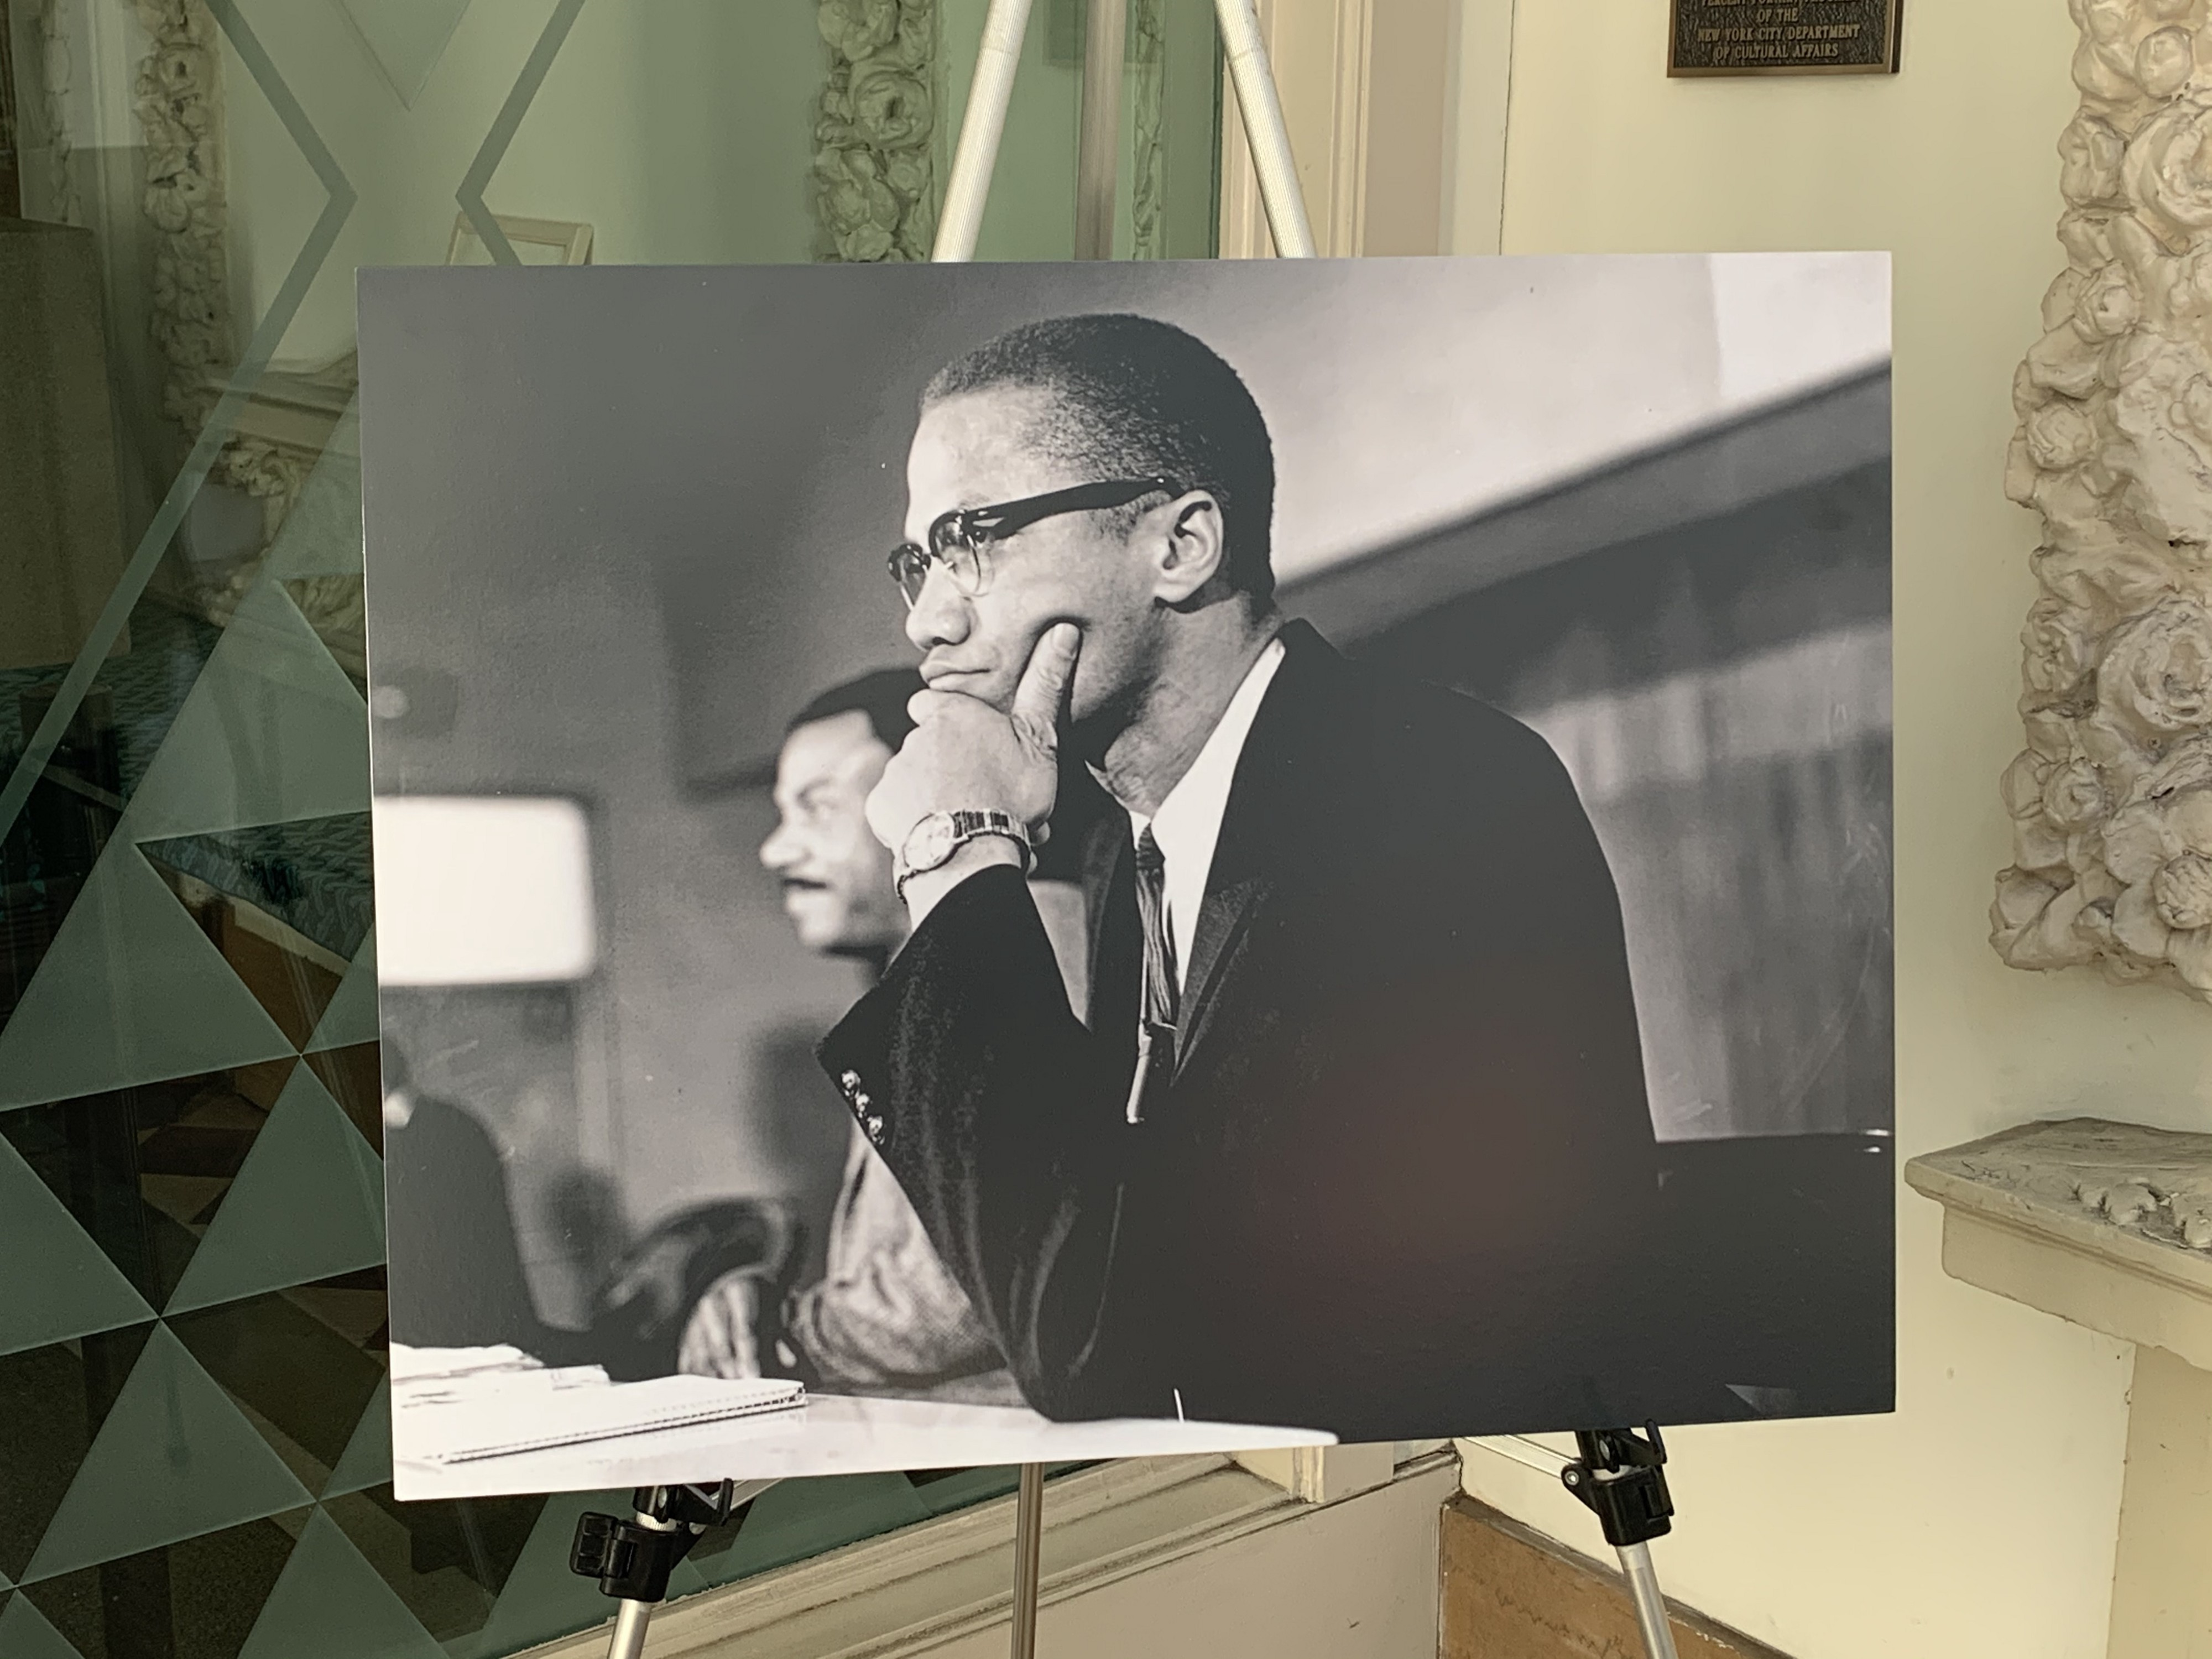 A picture of Malcolm X on an easel.